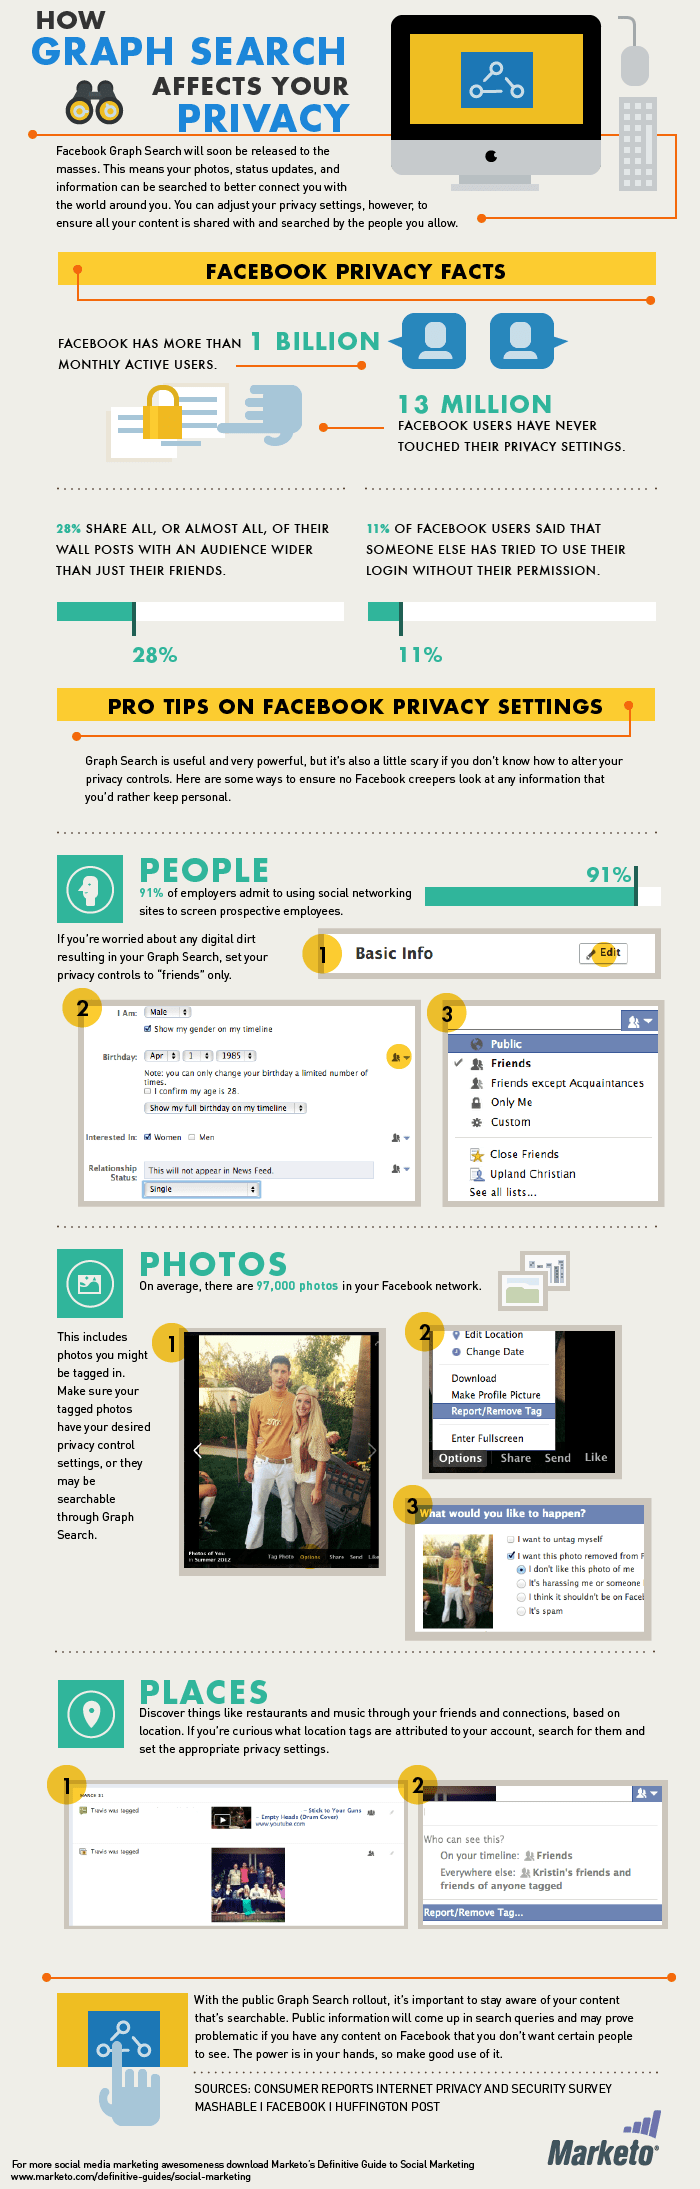 how-facebook-graph-search-affects-your-privacy-infographic_5182b4eb991a6